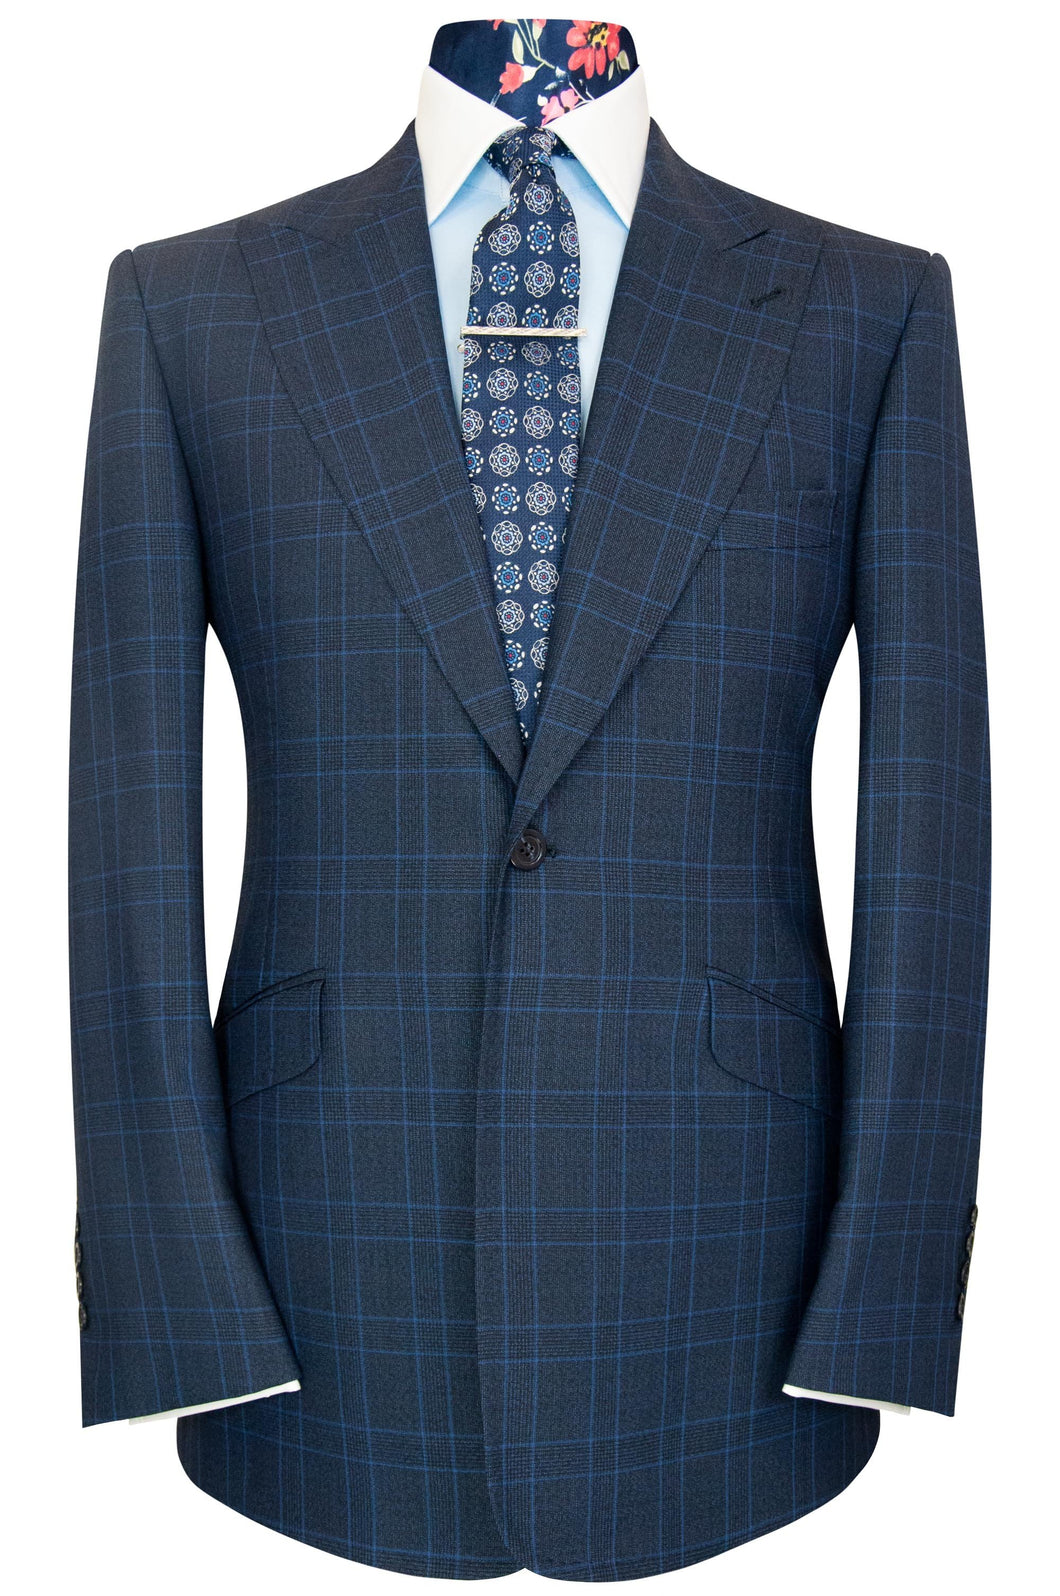 William Hunt Savile Row Cobalt over federal blue two piece windowpane check suit